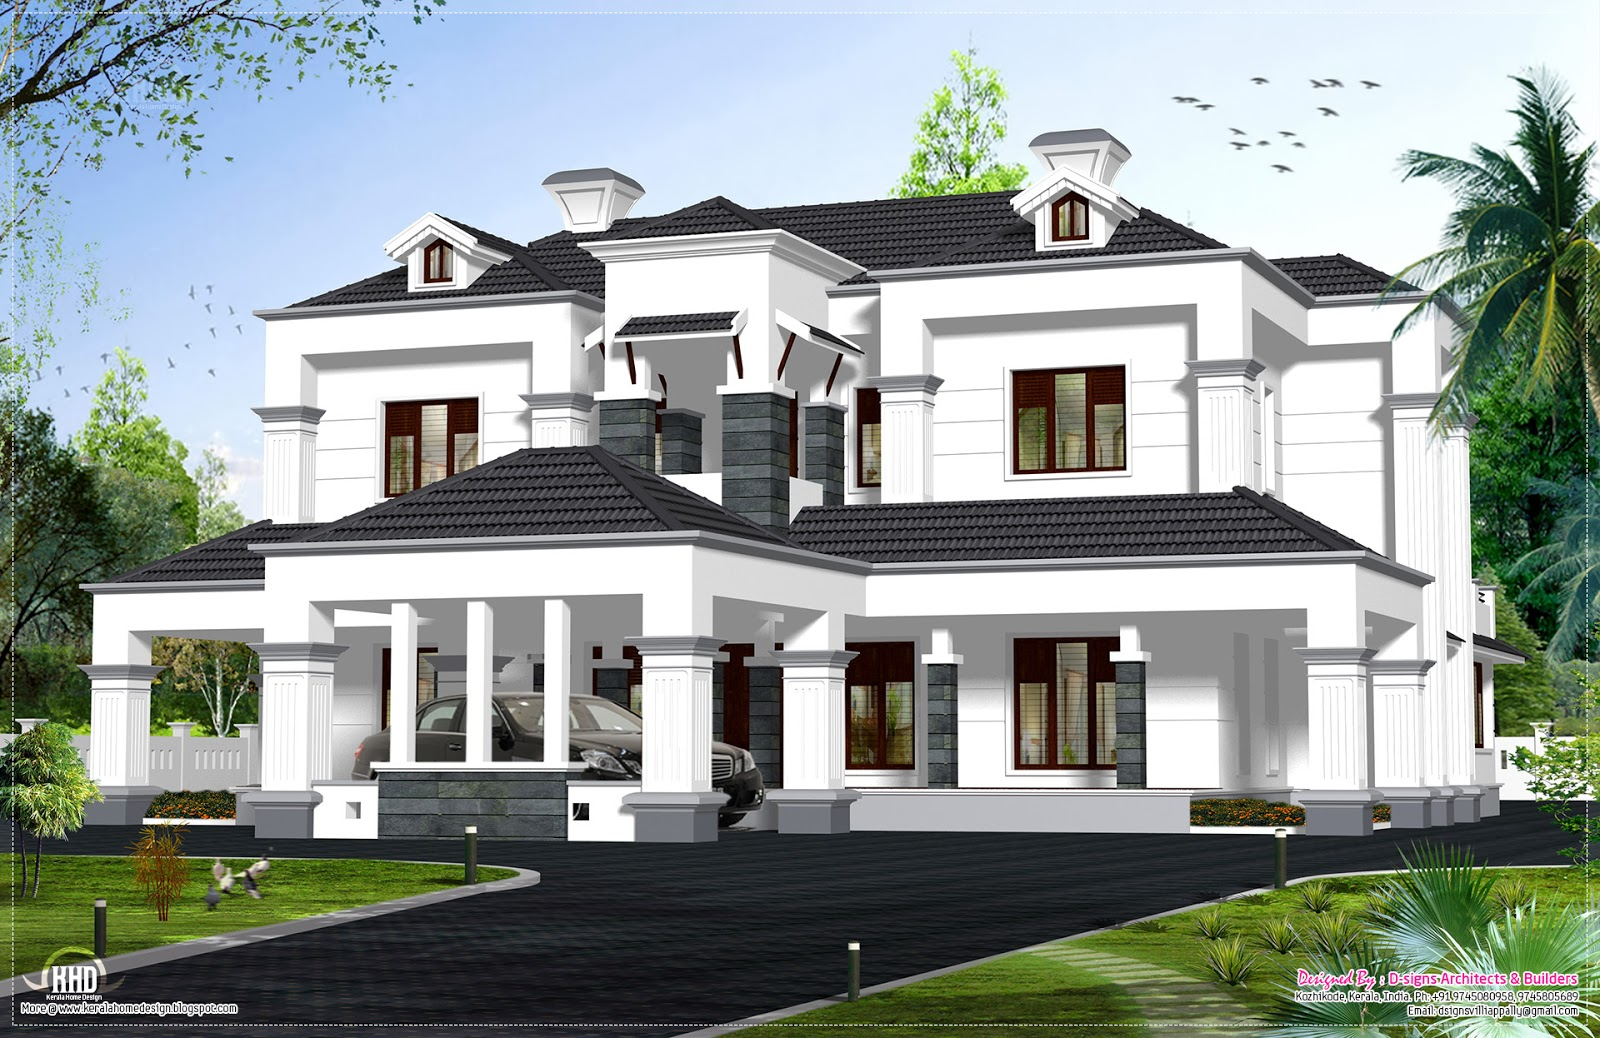 Victorian model house exterior kerala home design and for Best home designs 2013